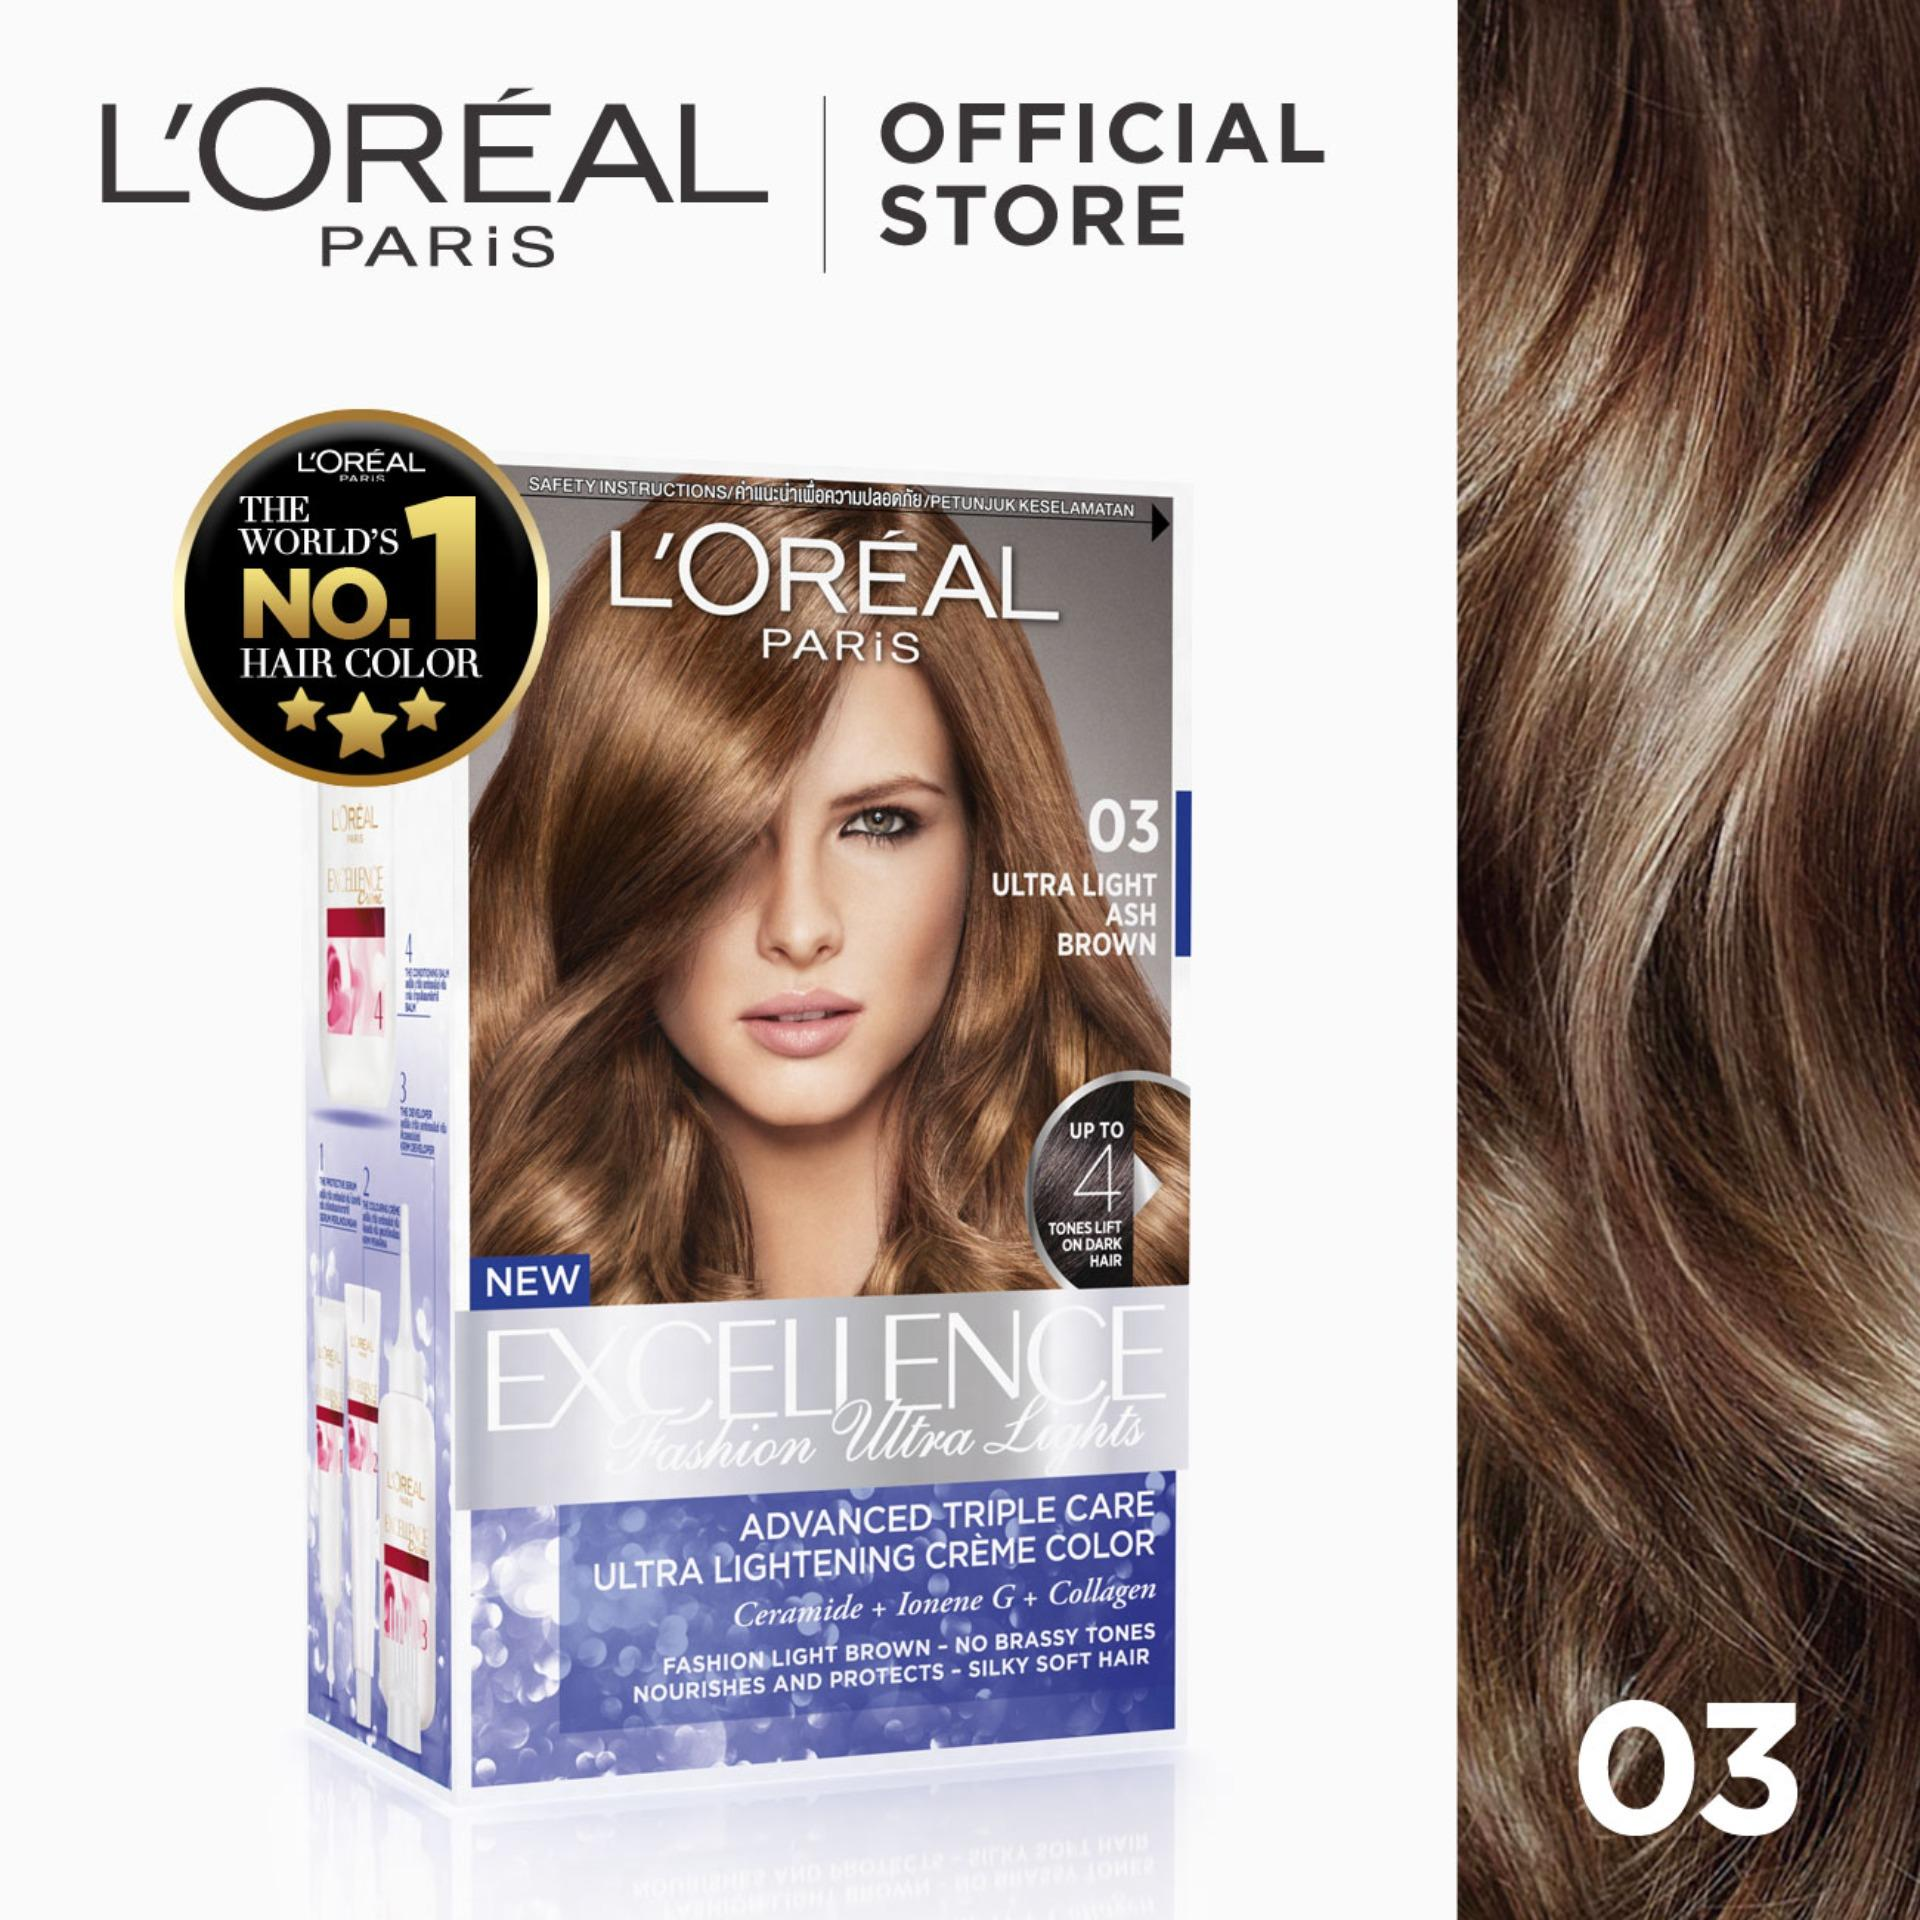 Excellence Fashion Ultra Lights Hair Color - 03 Ash Brown [worlds No.1] By Loreal Paris [w/ Protective Serum & Conditioner] By Loreal.